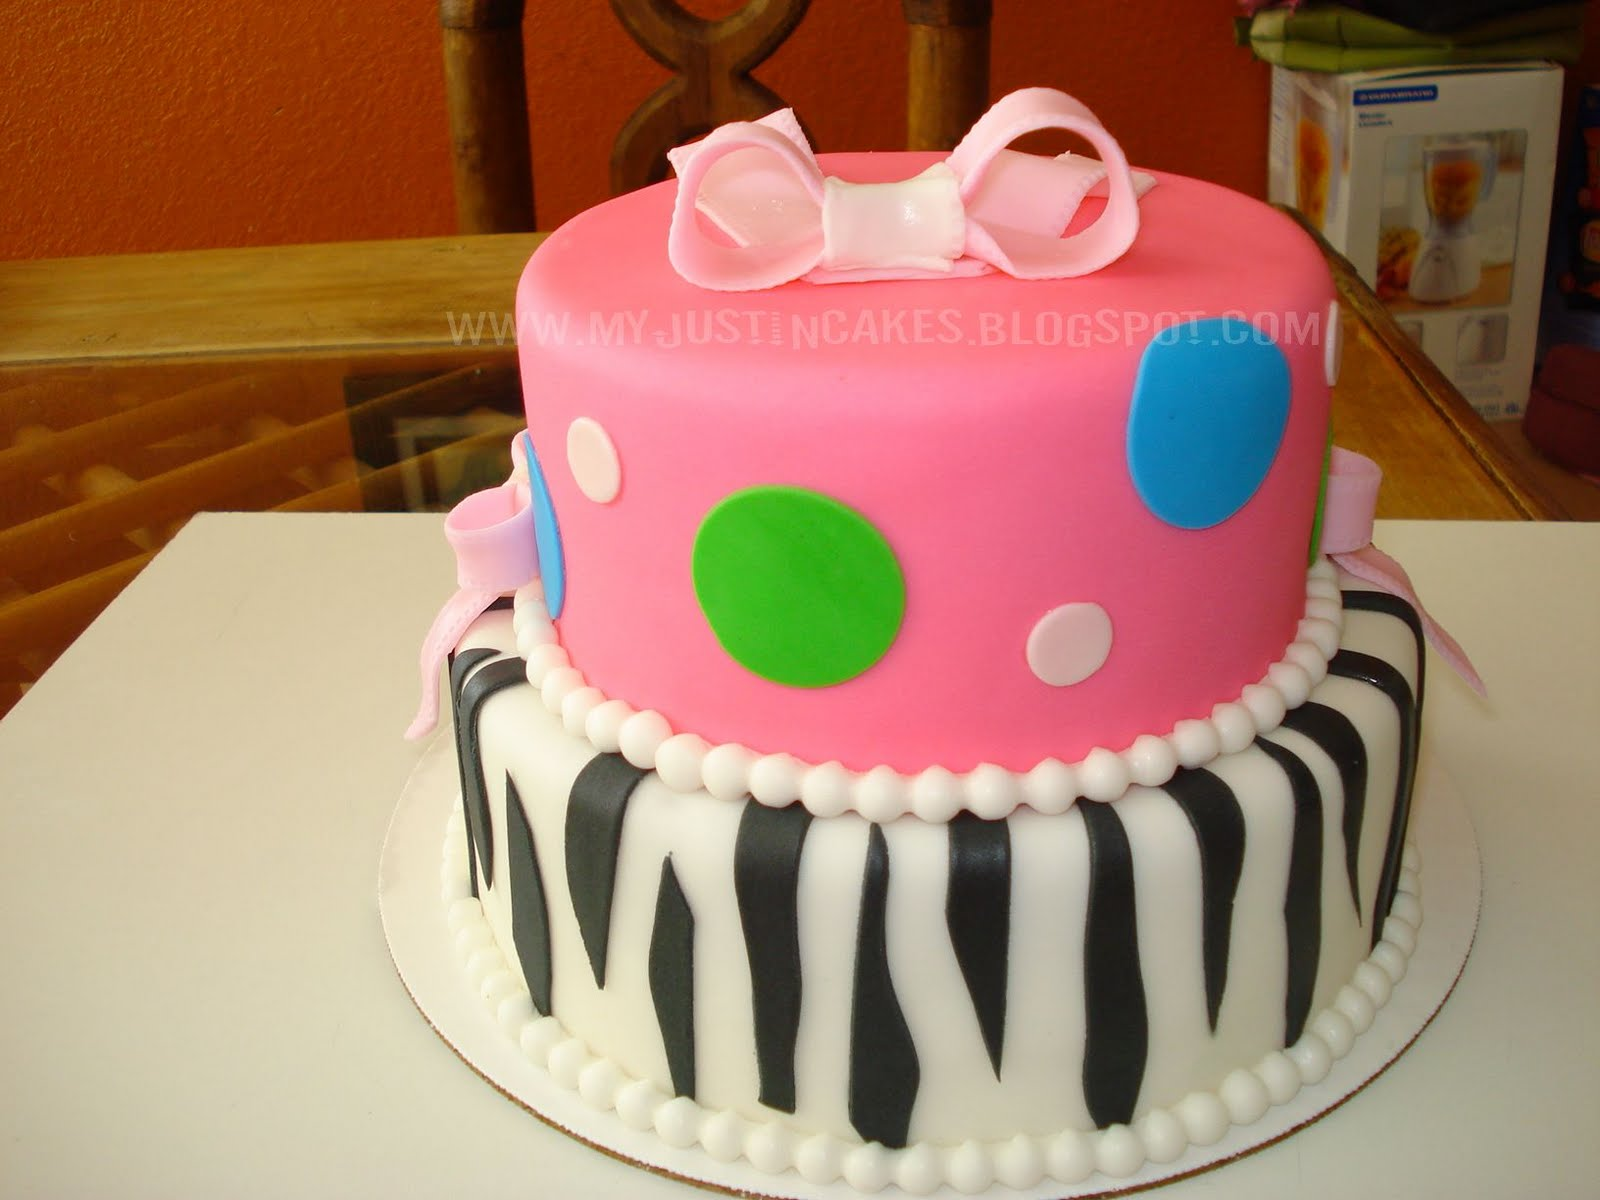 Just in Cakes: 13 Year Old Girl Birthday Cake